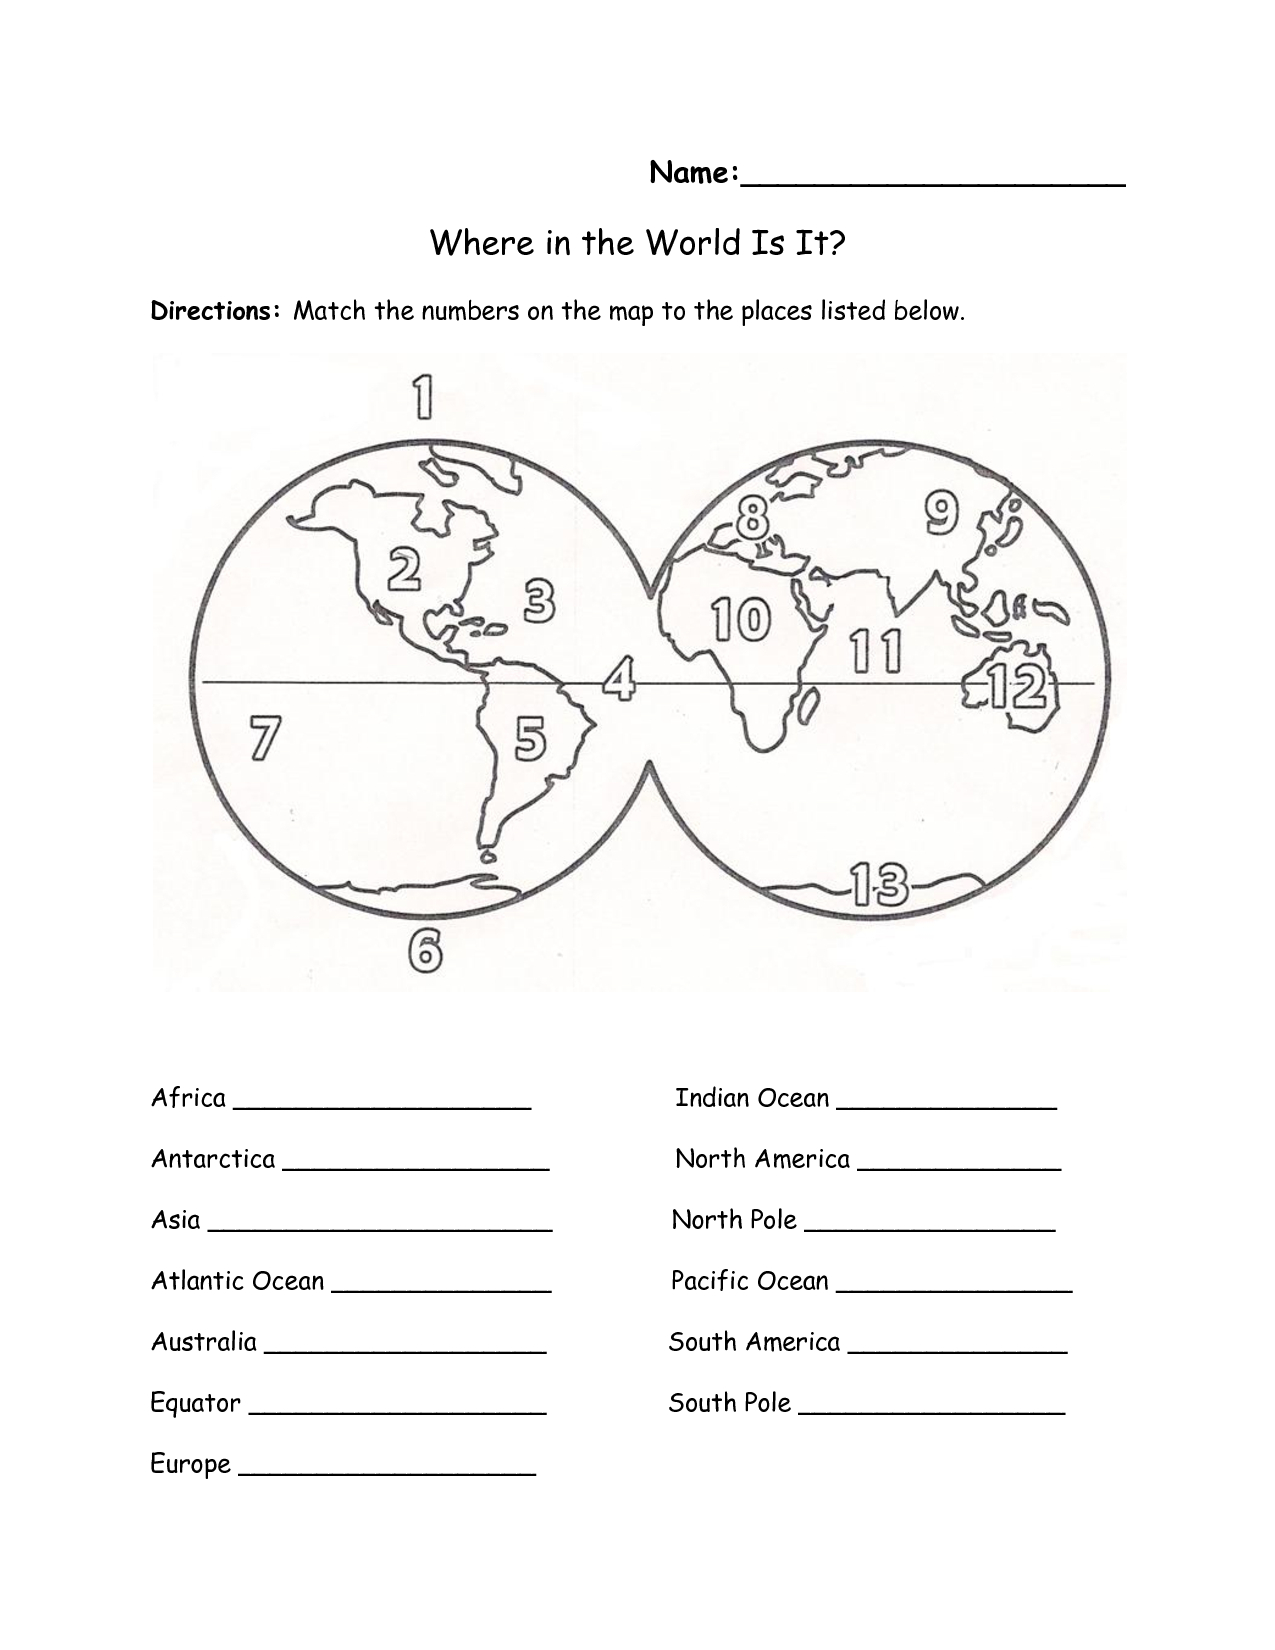 Printables Continents And Oceans Of The World Worksheet - Free Printable Map Of Continents And Oceans